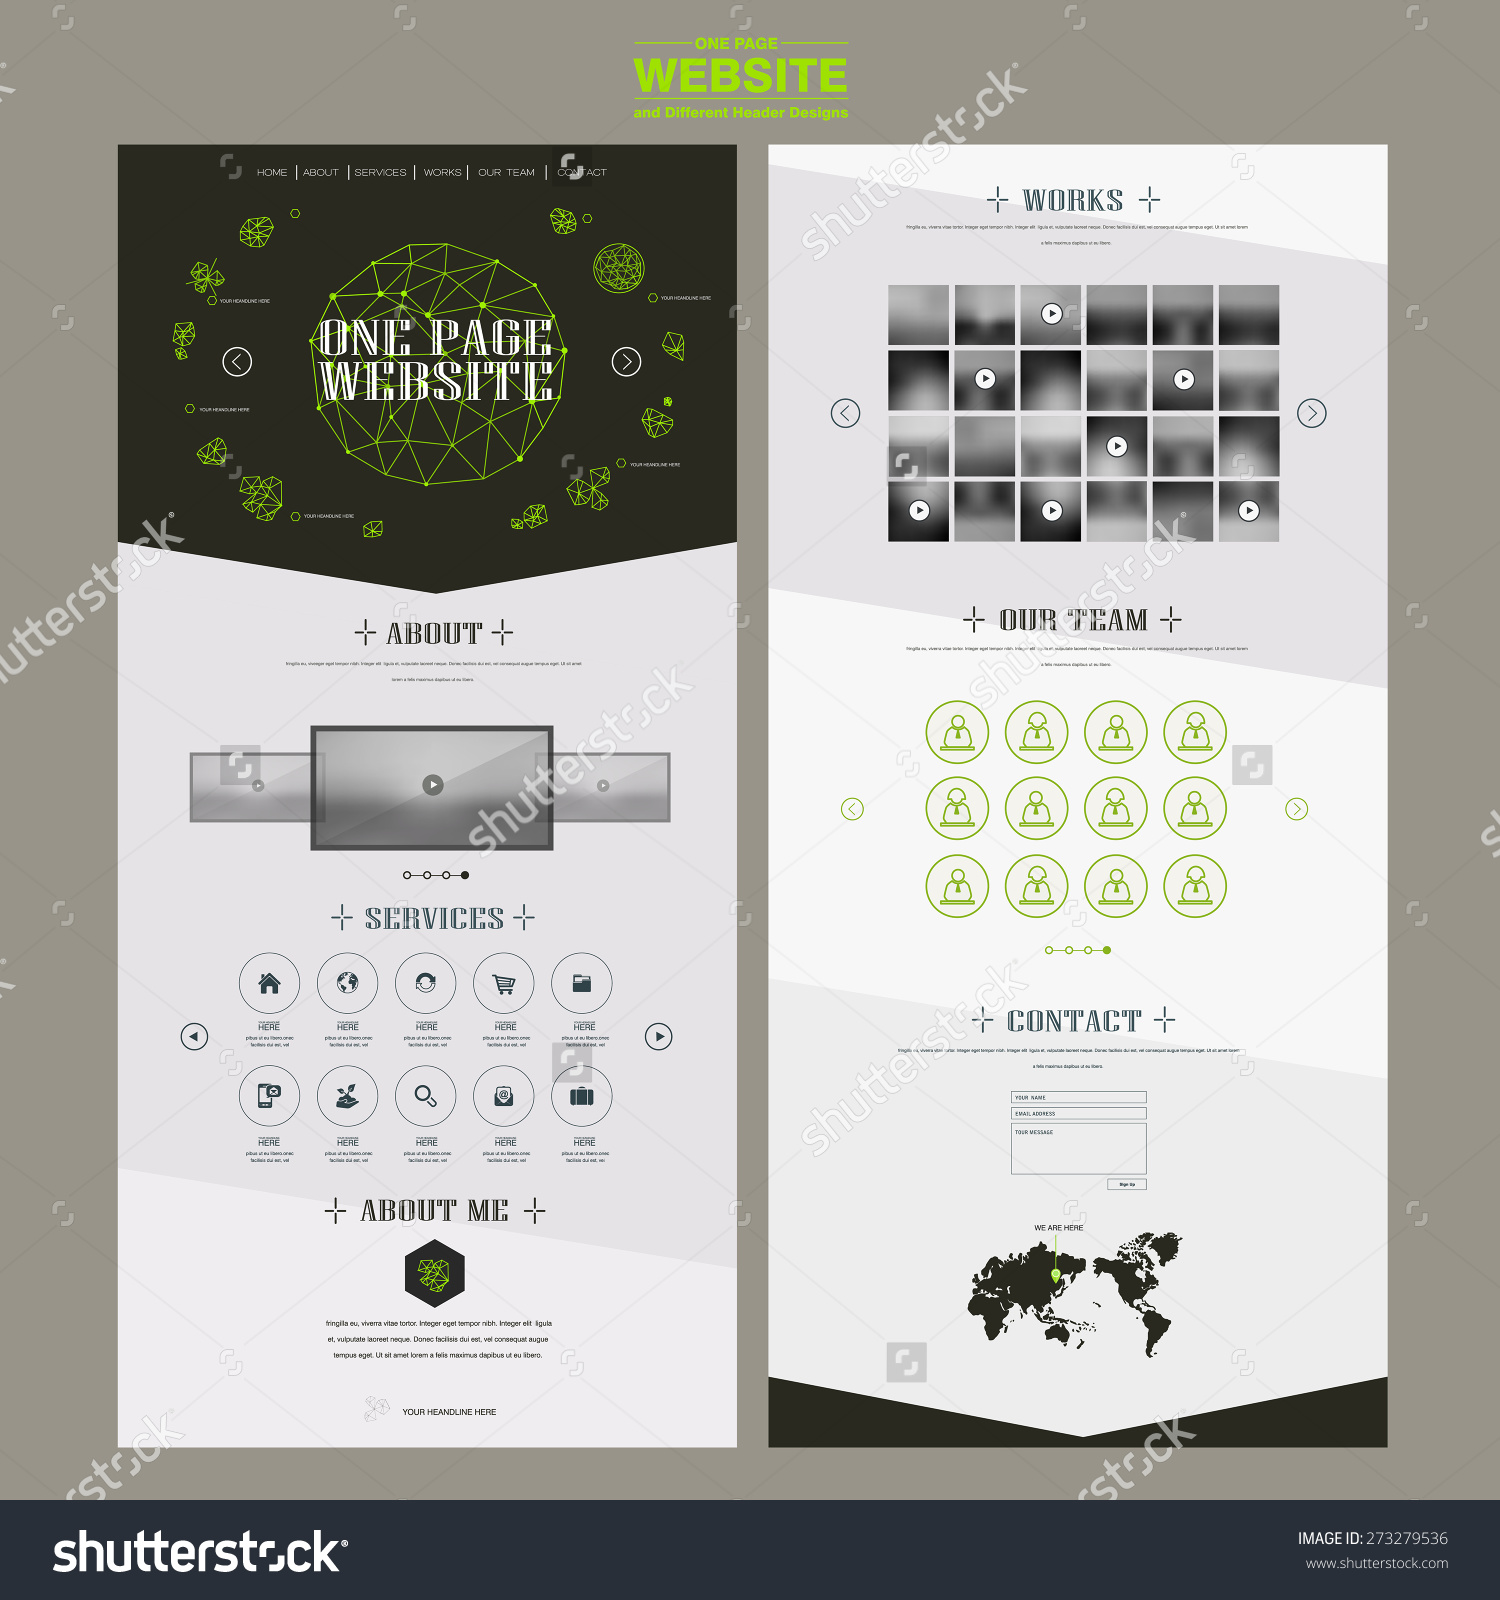 Edgy One Page Website Template Design With Fluorescent Line ...